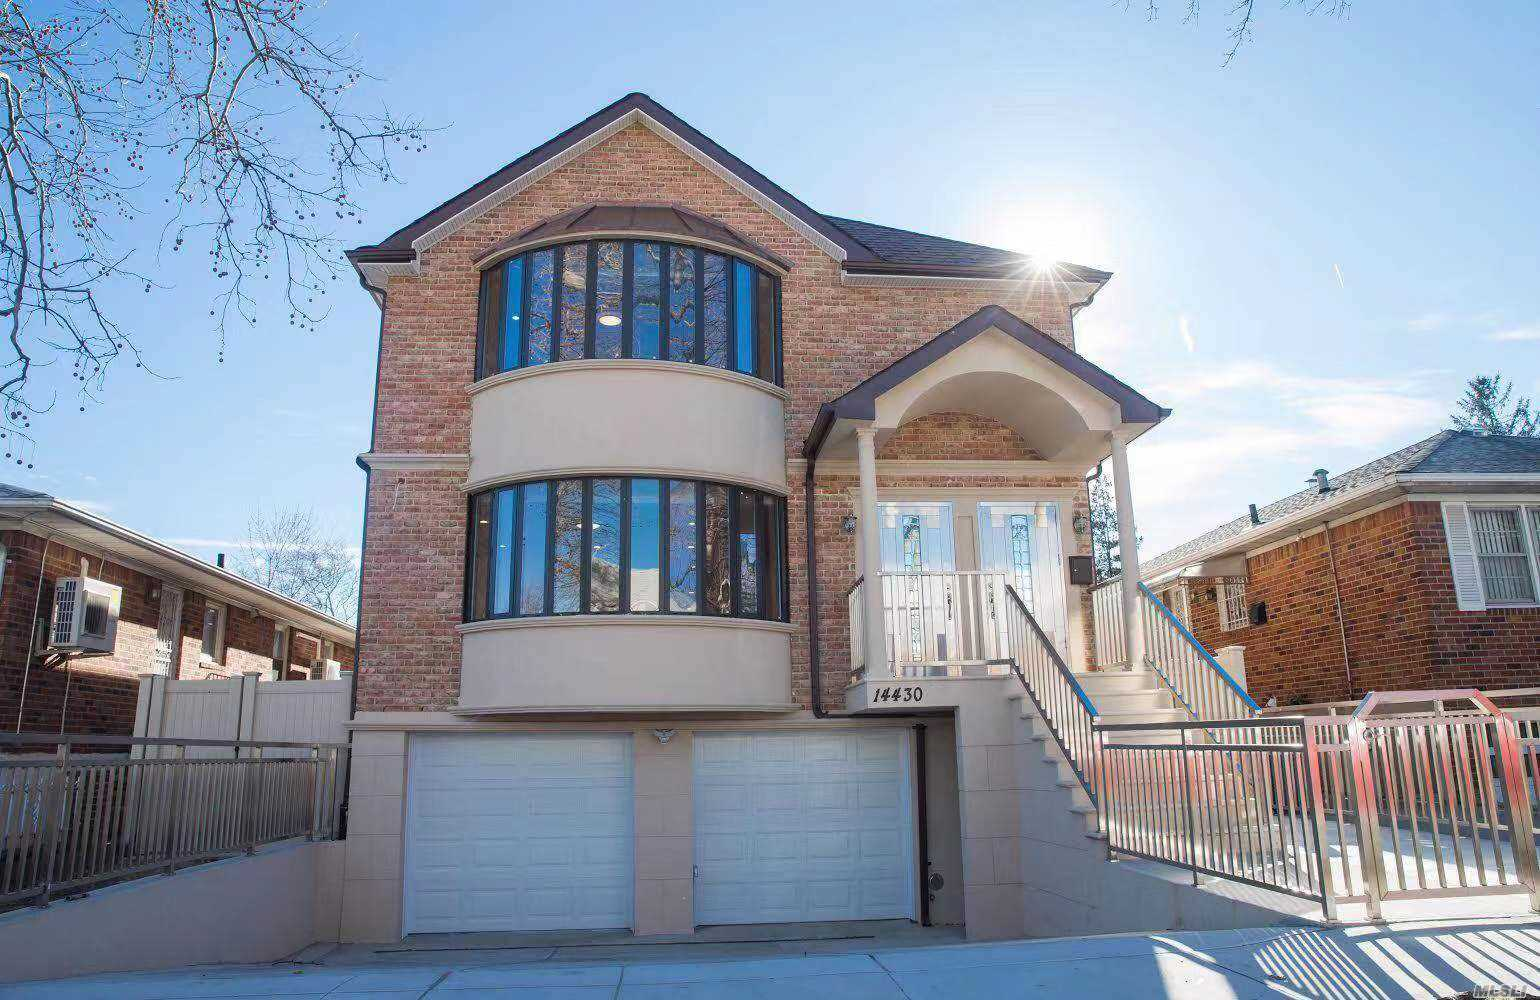 New brick construction built in 2018, Custom luxury legal two Dwelling in beautiful North Flushing, bright spacious rms, each floor size 1432x3, total 8bedrooms & 5full bathrooms & 2modern kits, high ceilings, 2cars garage, full finished bsmt W/sep entrances front & back.one block from 2 Supermarkets, Tennis Football courts, close to shopping centers, BJ and all.close to 7 train, one block to bus stops No44, No20 & No16, 2mins drive to highways (LIE and cross island PKWY).